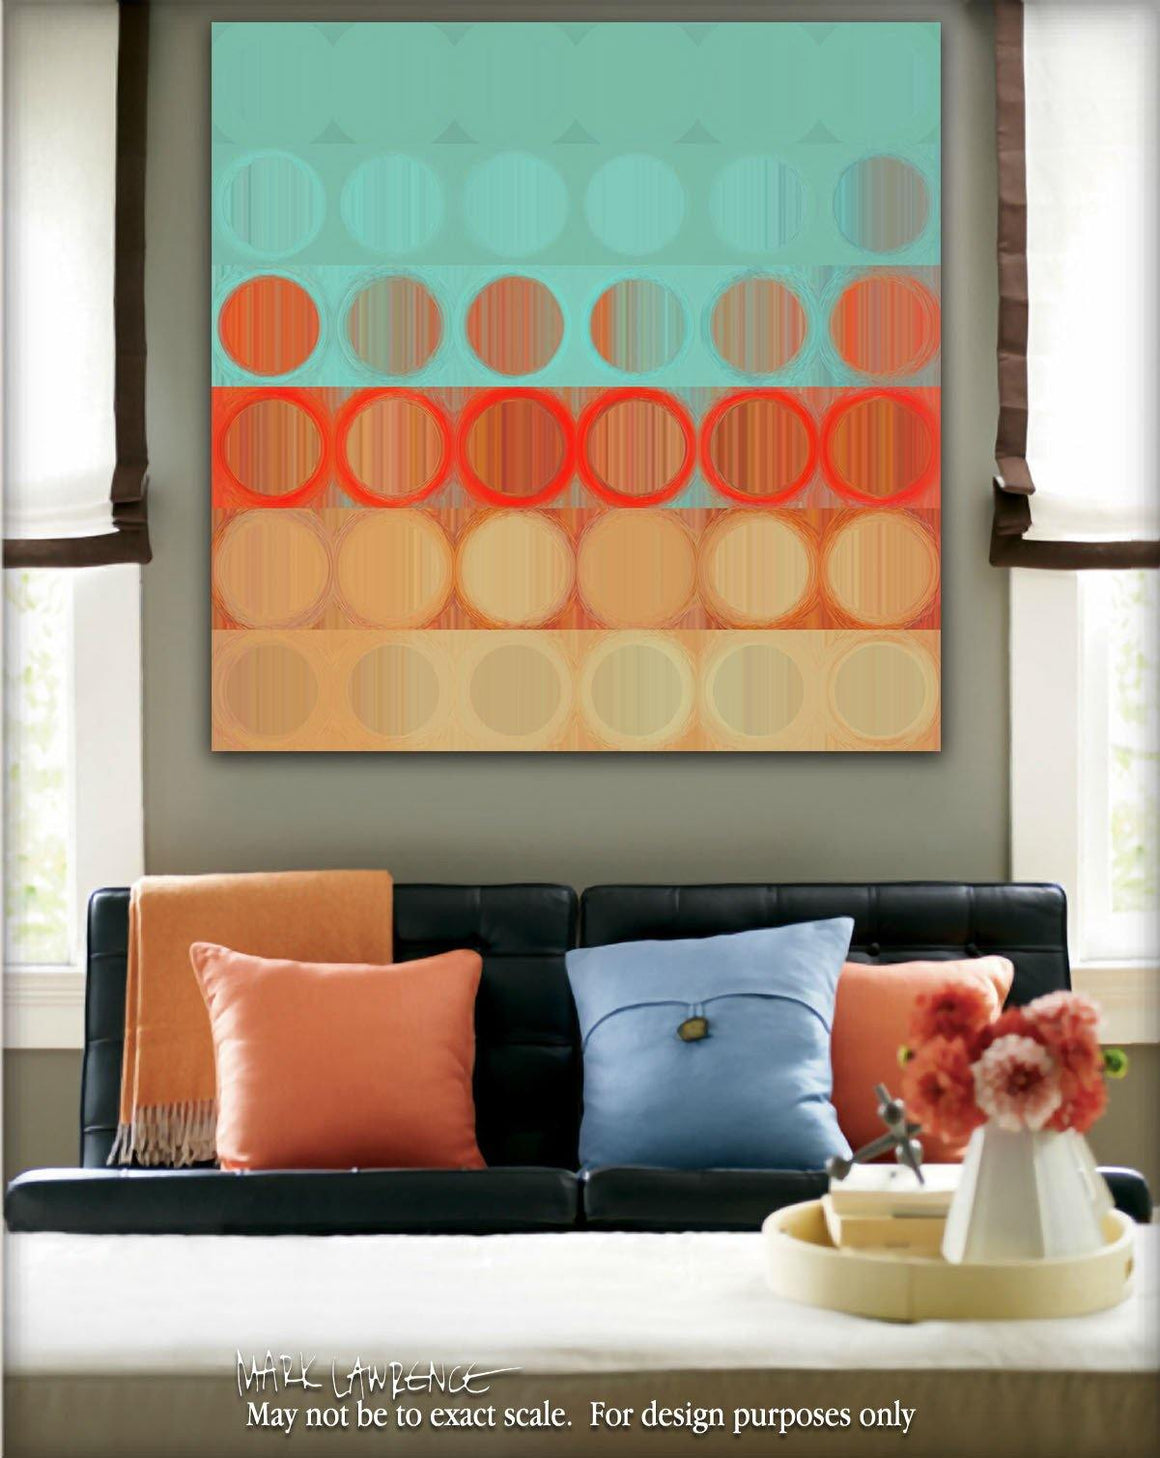 Interior Design Focal Art Inspiration-Circles & Squares #23. Exclusive Traditional Fine Art. Original limited edition signed canvas & paper giclees by internationally collected artist Mark Lawrence